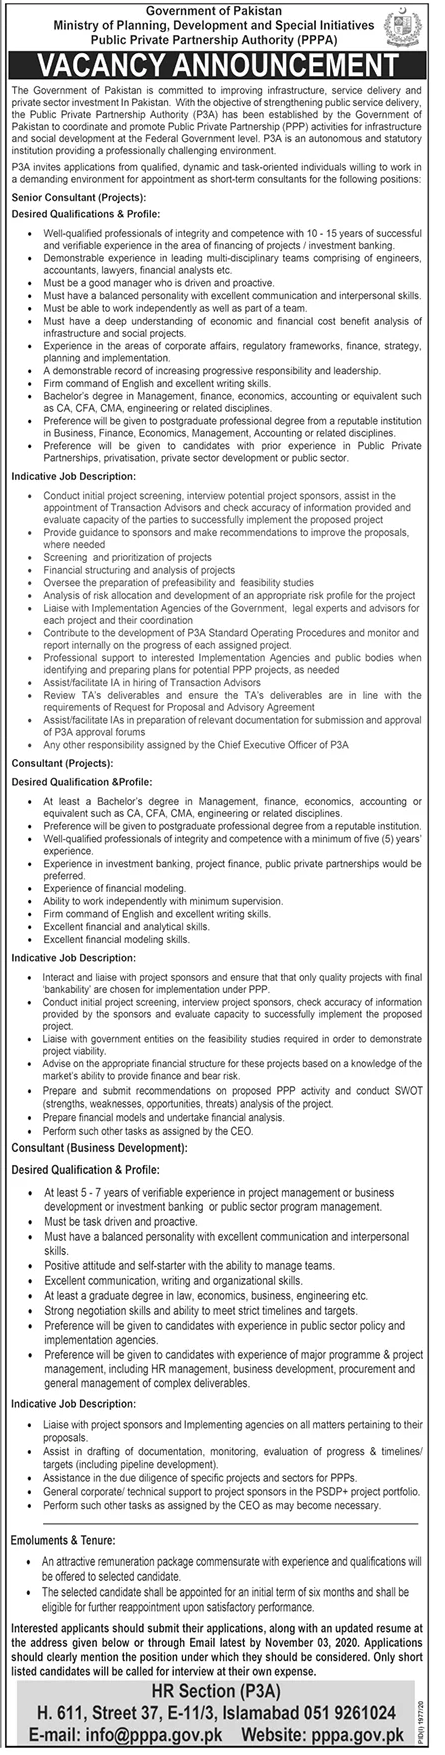 Ministry of Planning Development & Specialist Initiatives Job Advertisement in Pakistan Jobs 2020-2021